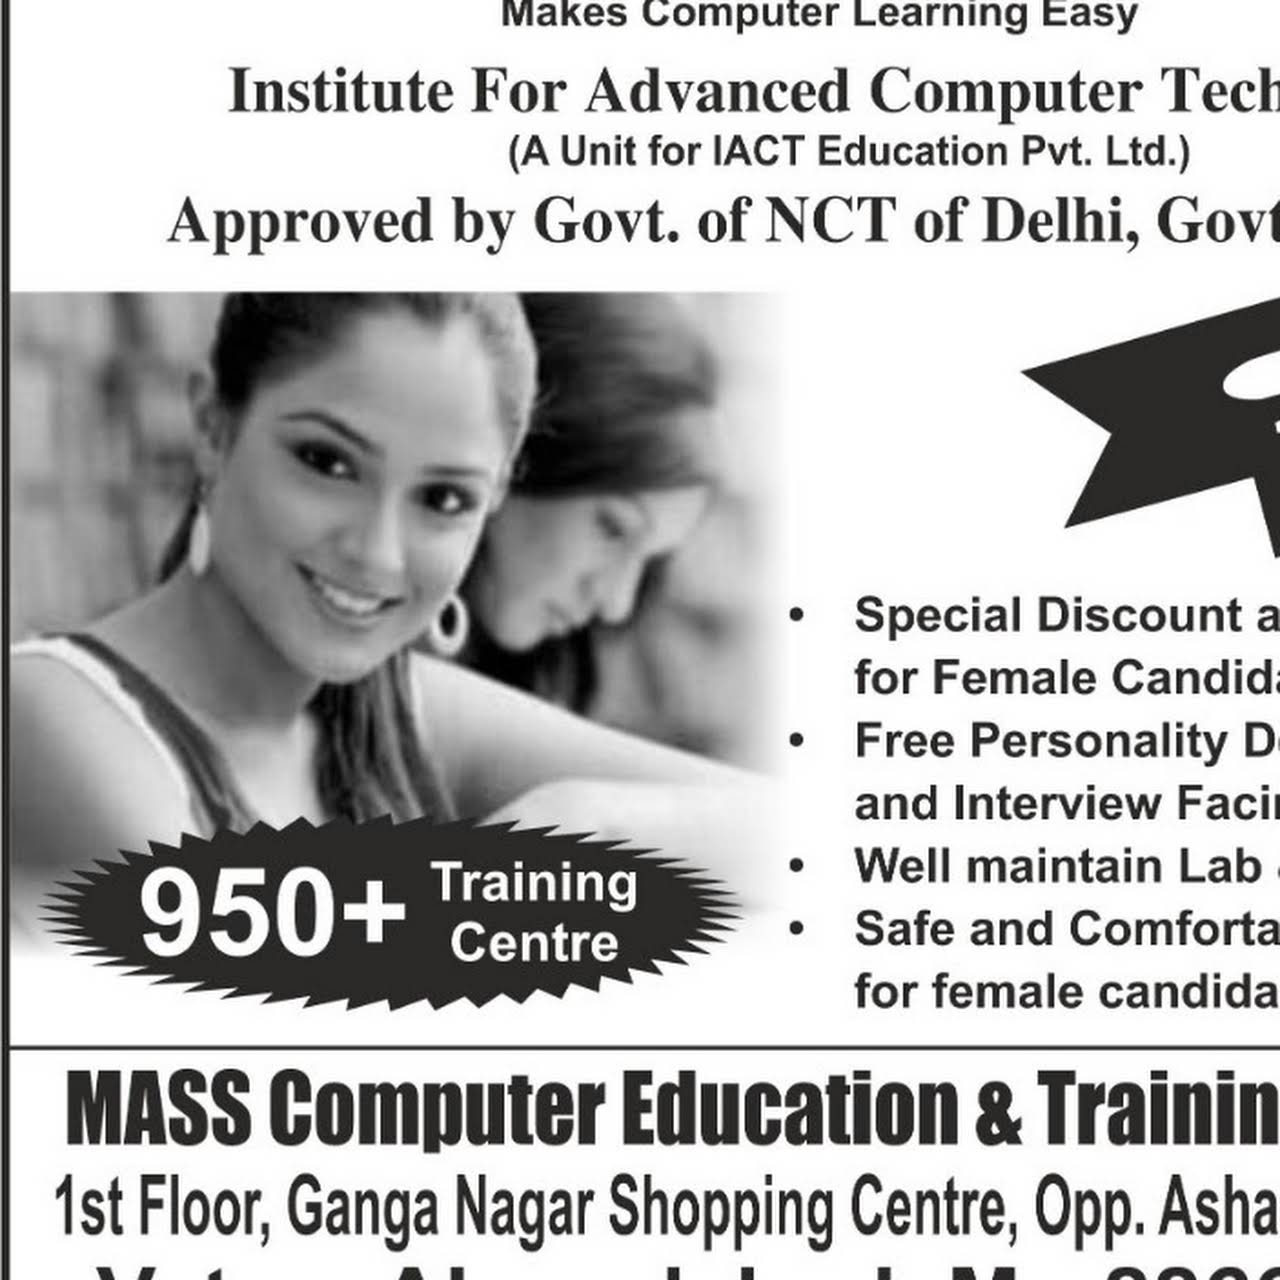 IACT Computer Institute(Approved by Govt of NCT,Govt of